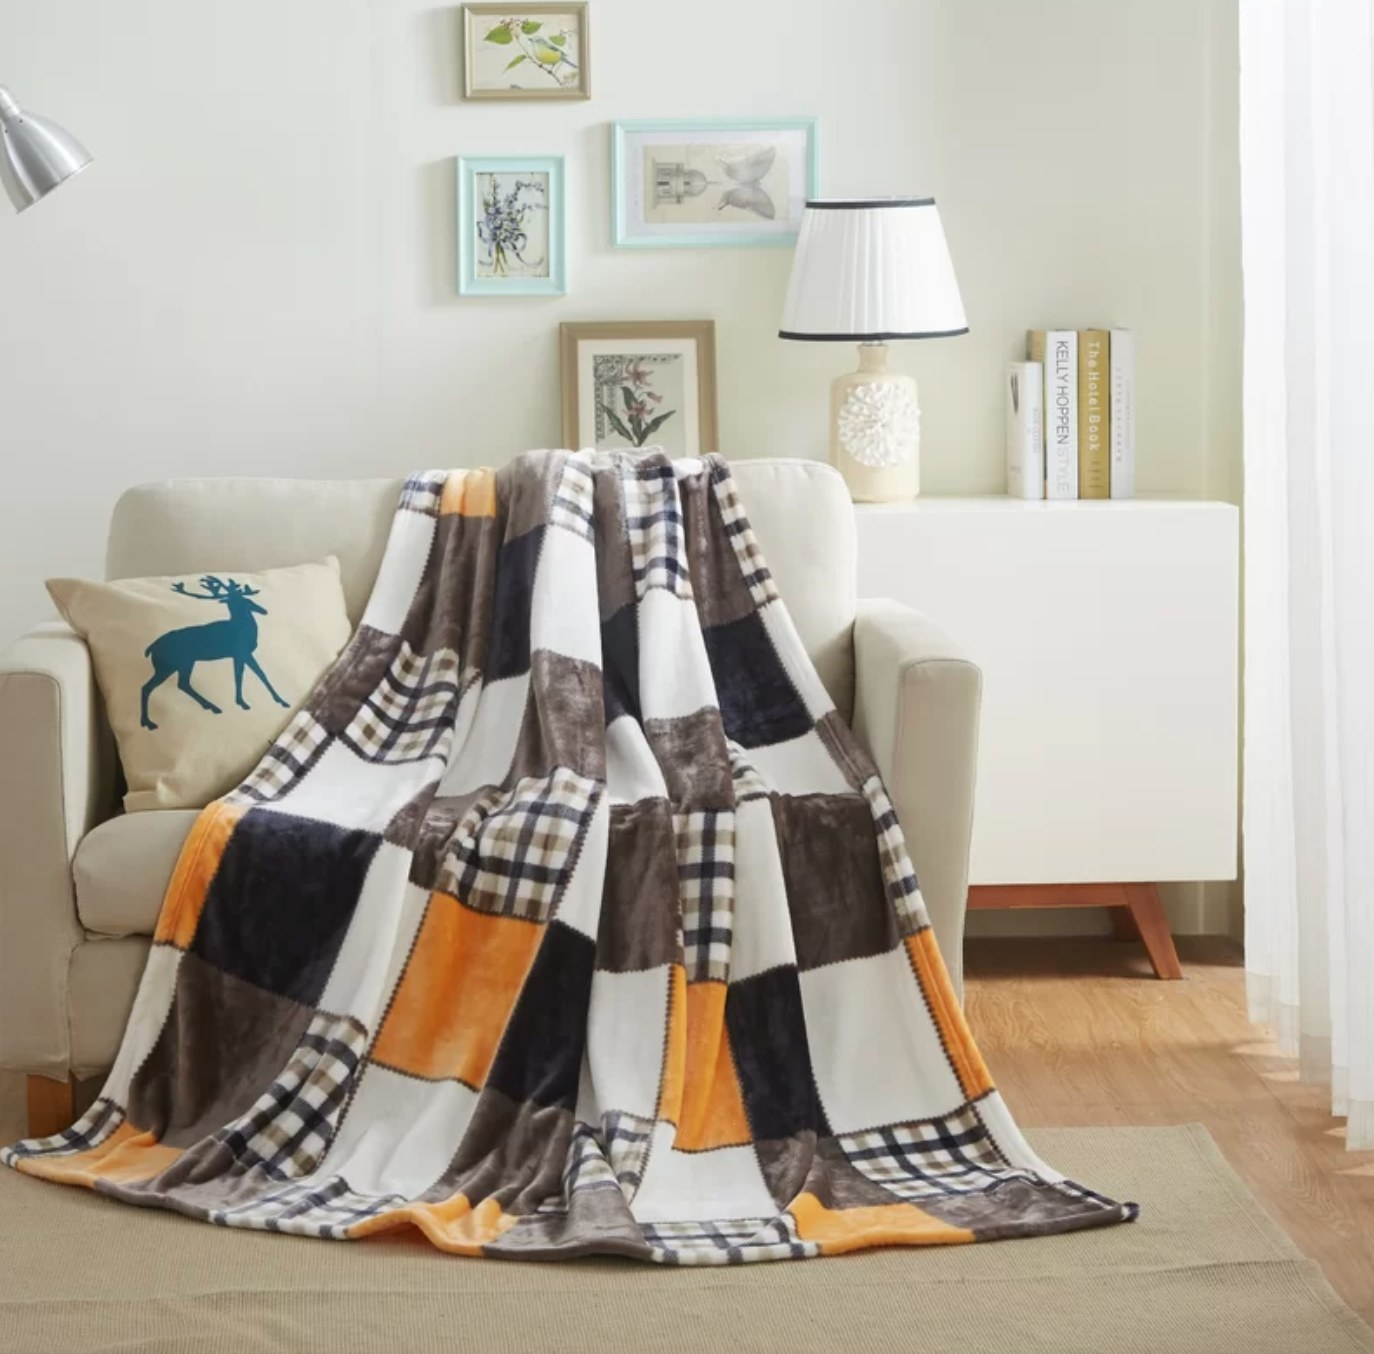 The farmhouse patchwork throw made of super-soft lightweight fleece